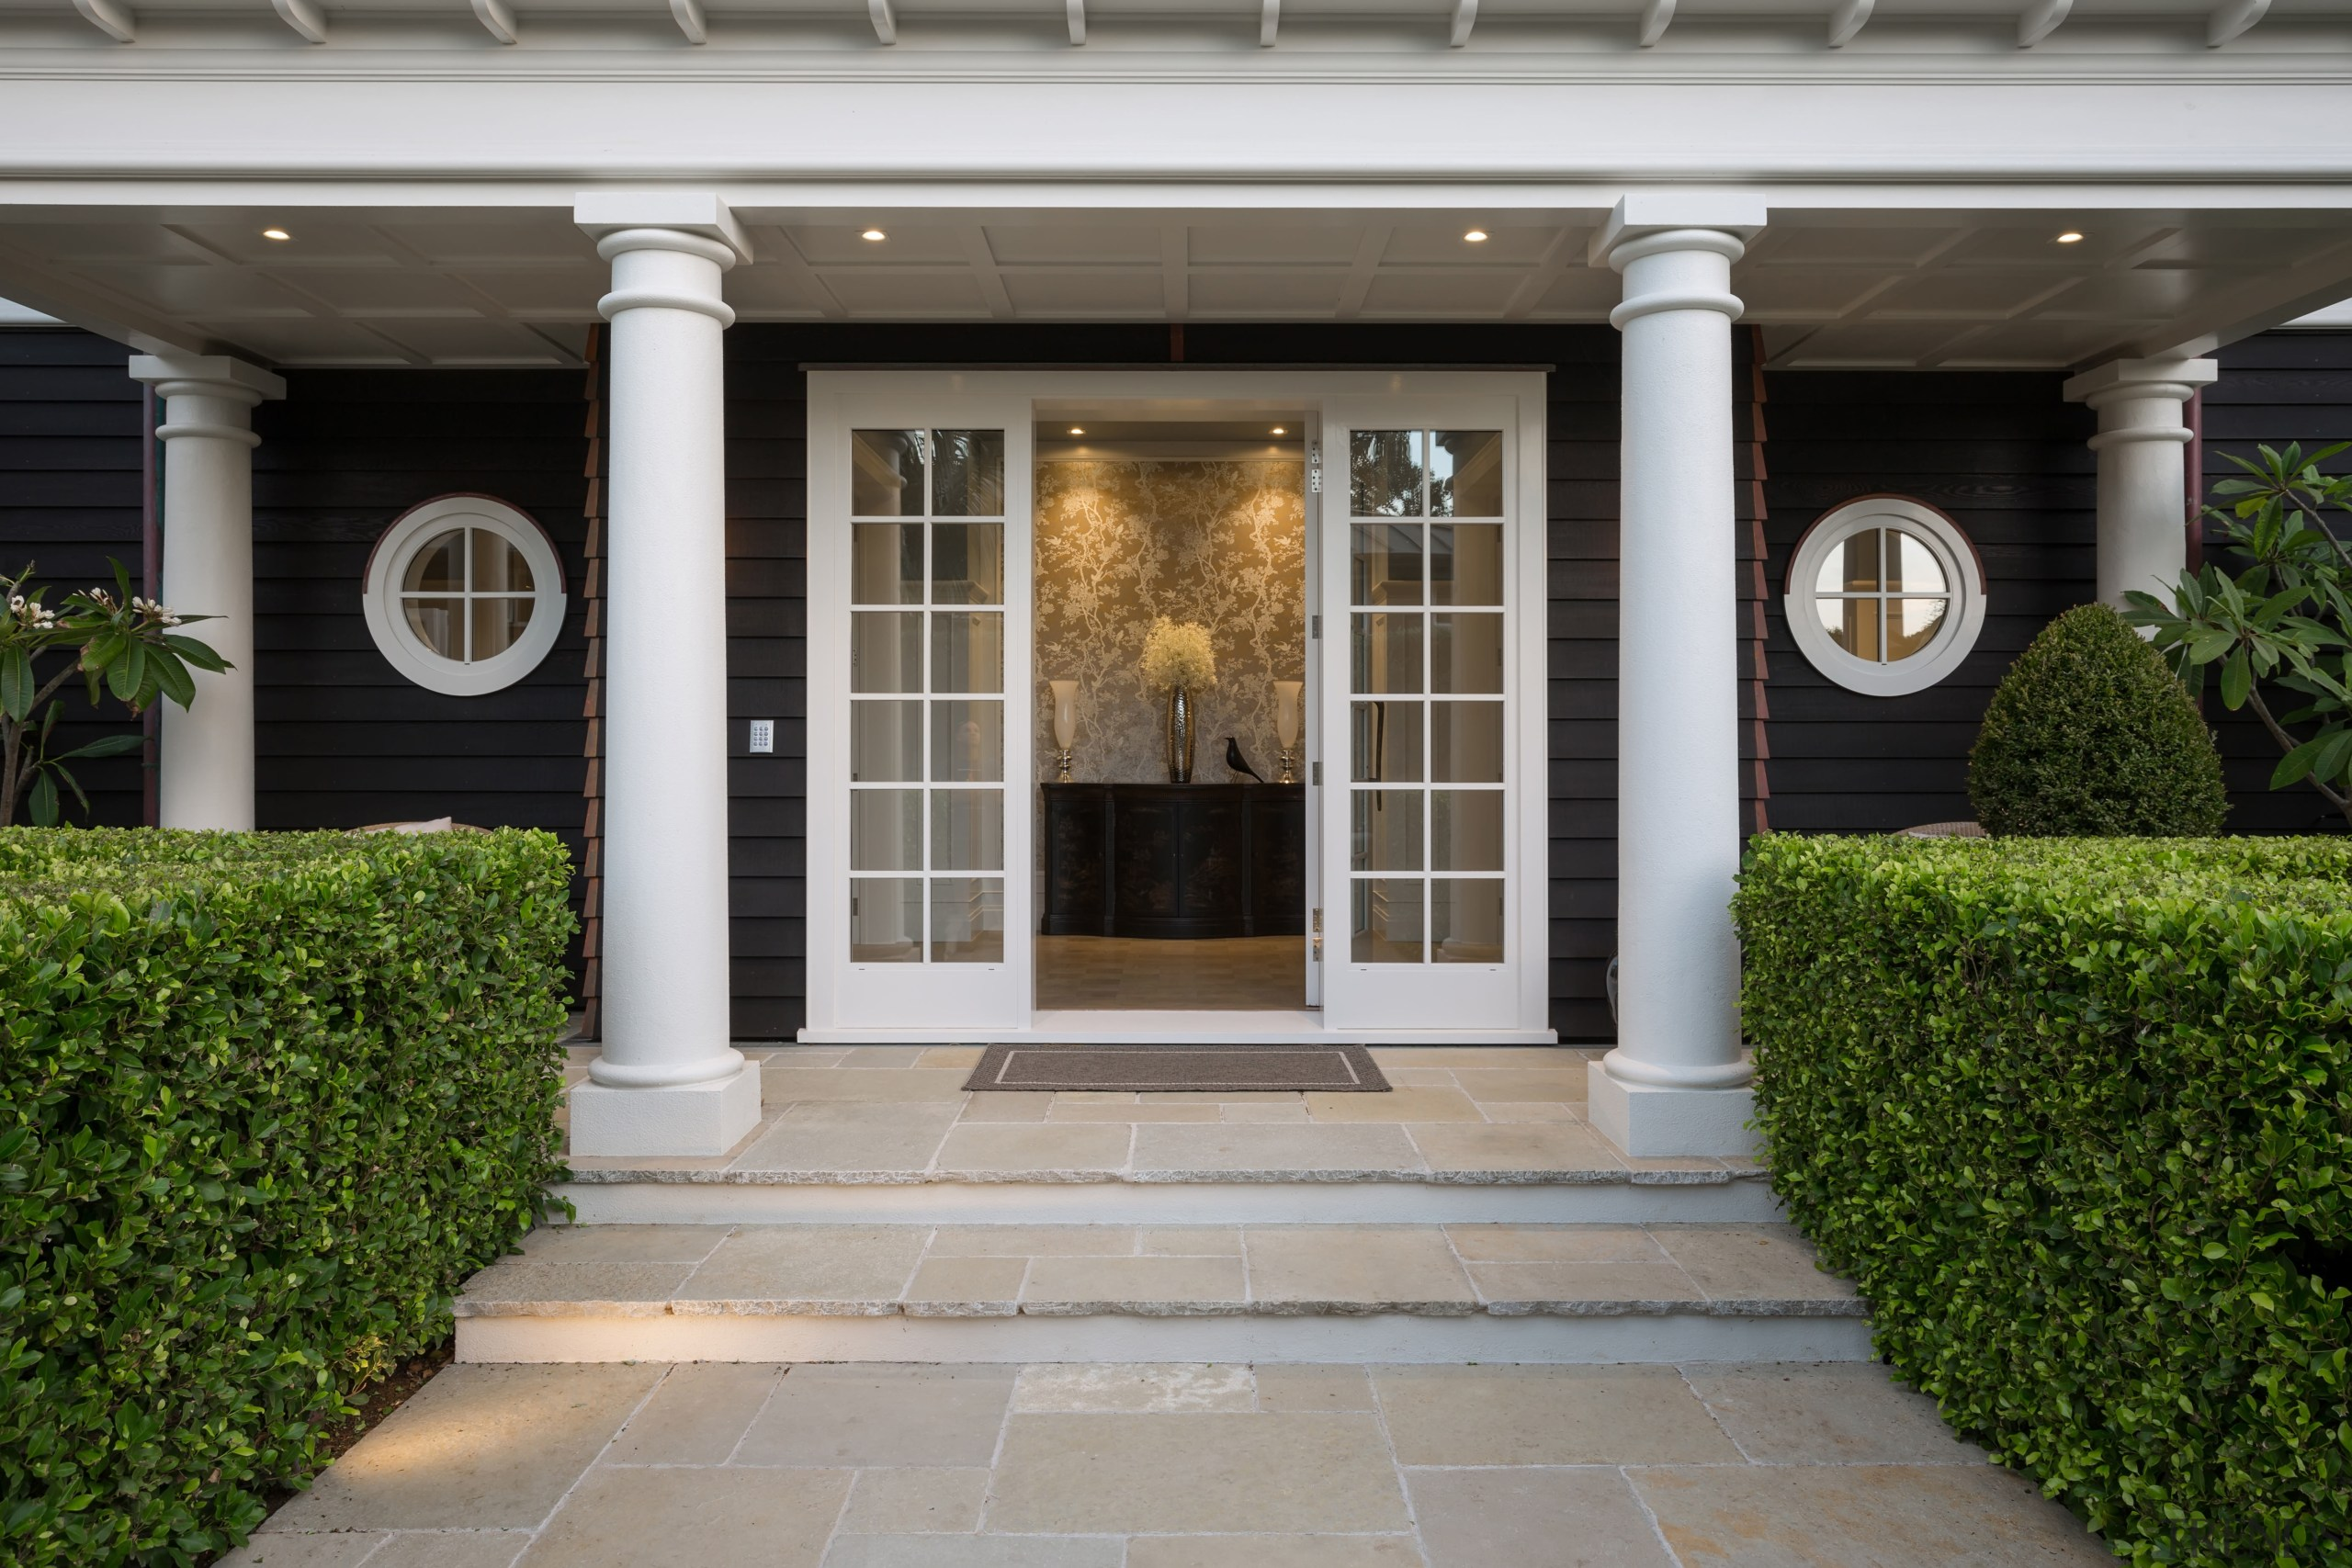 Classic columns and circular windows flank the front courtyard, door, estate, facade, home, house, outdoor structure, porch, property, real estate, structure, walkway, window, gray